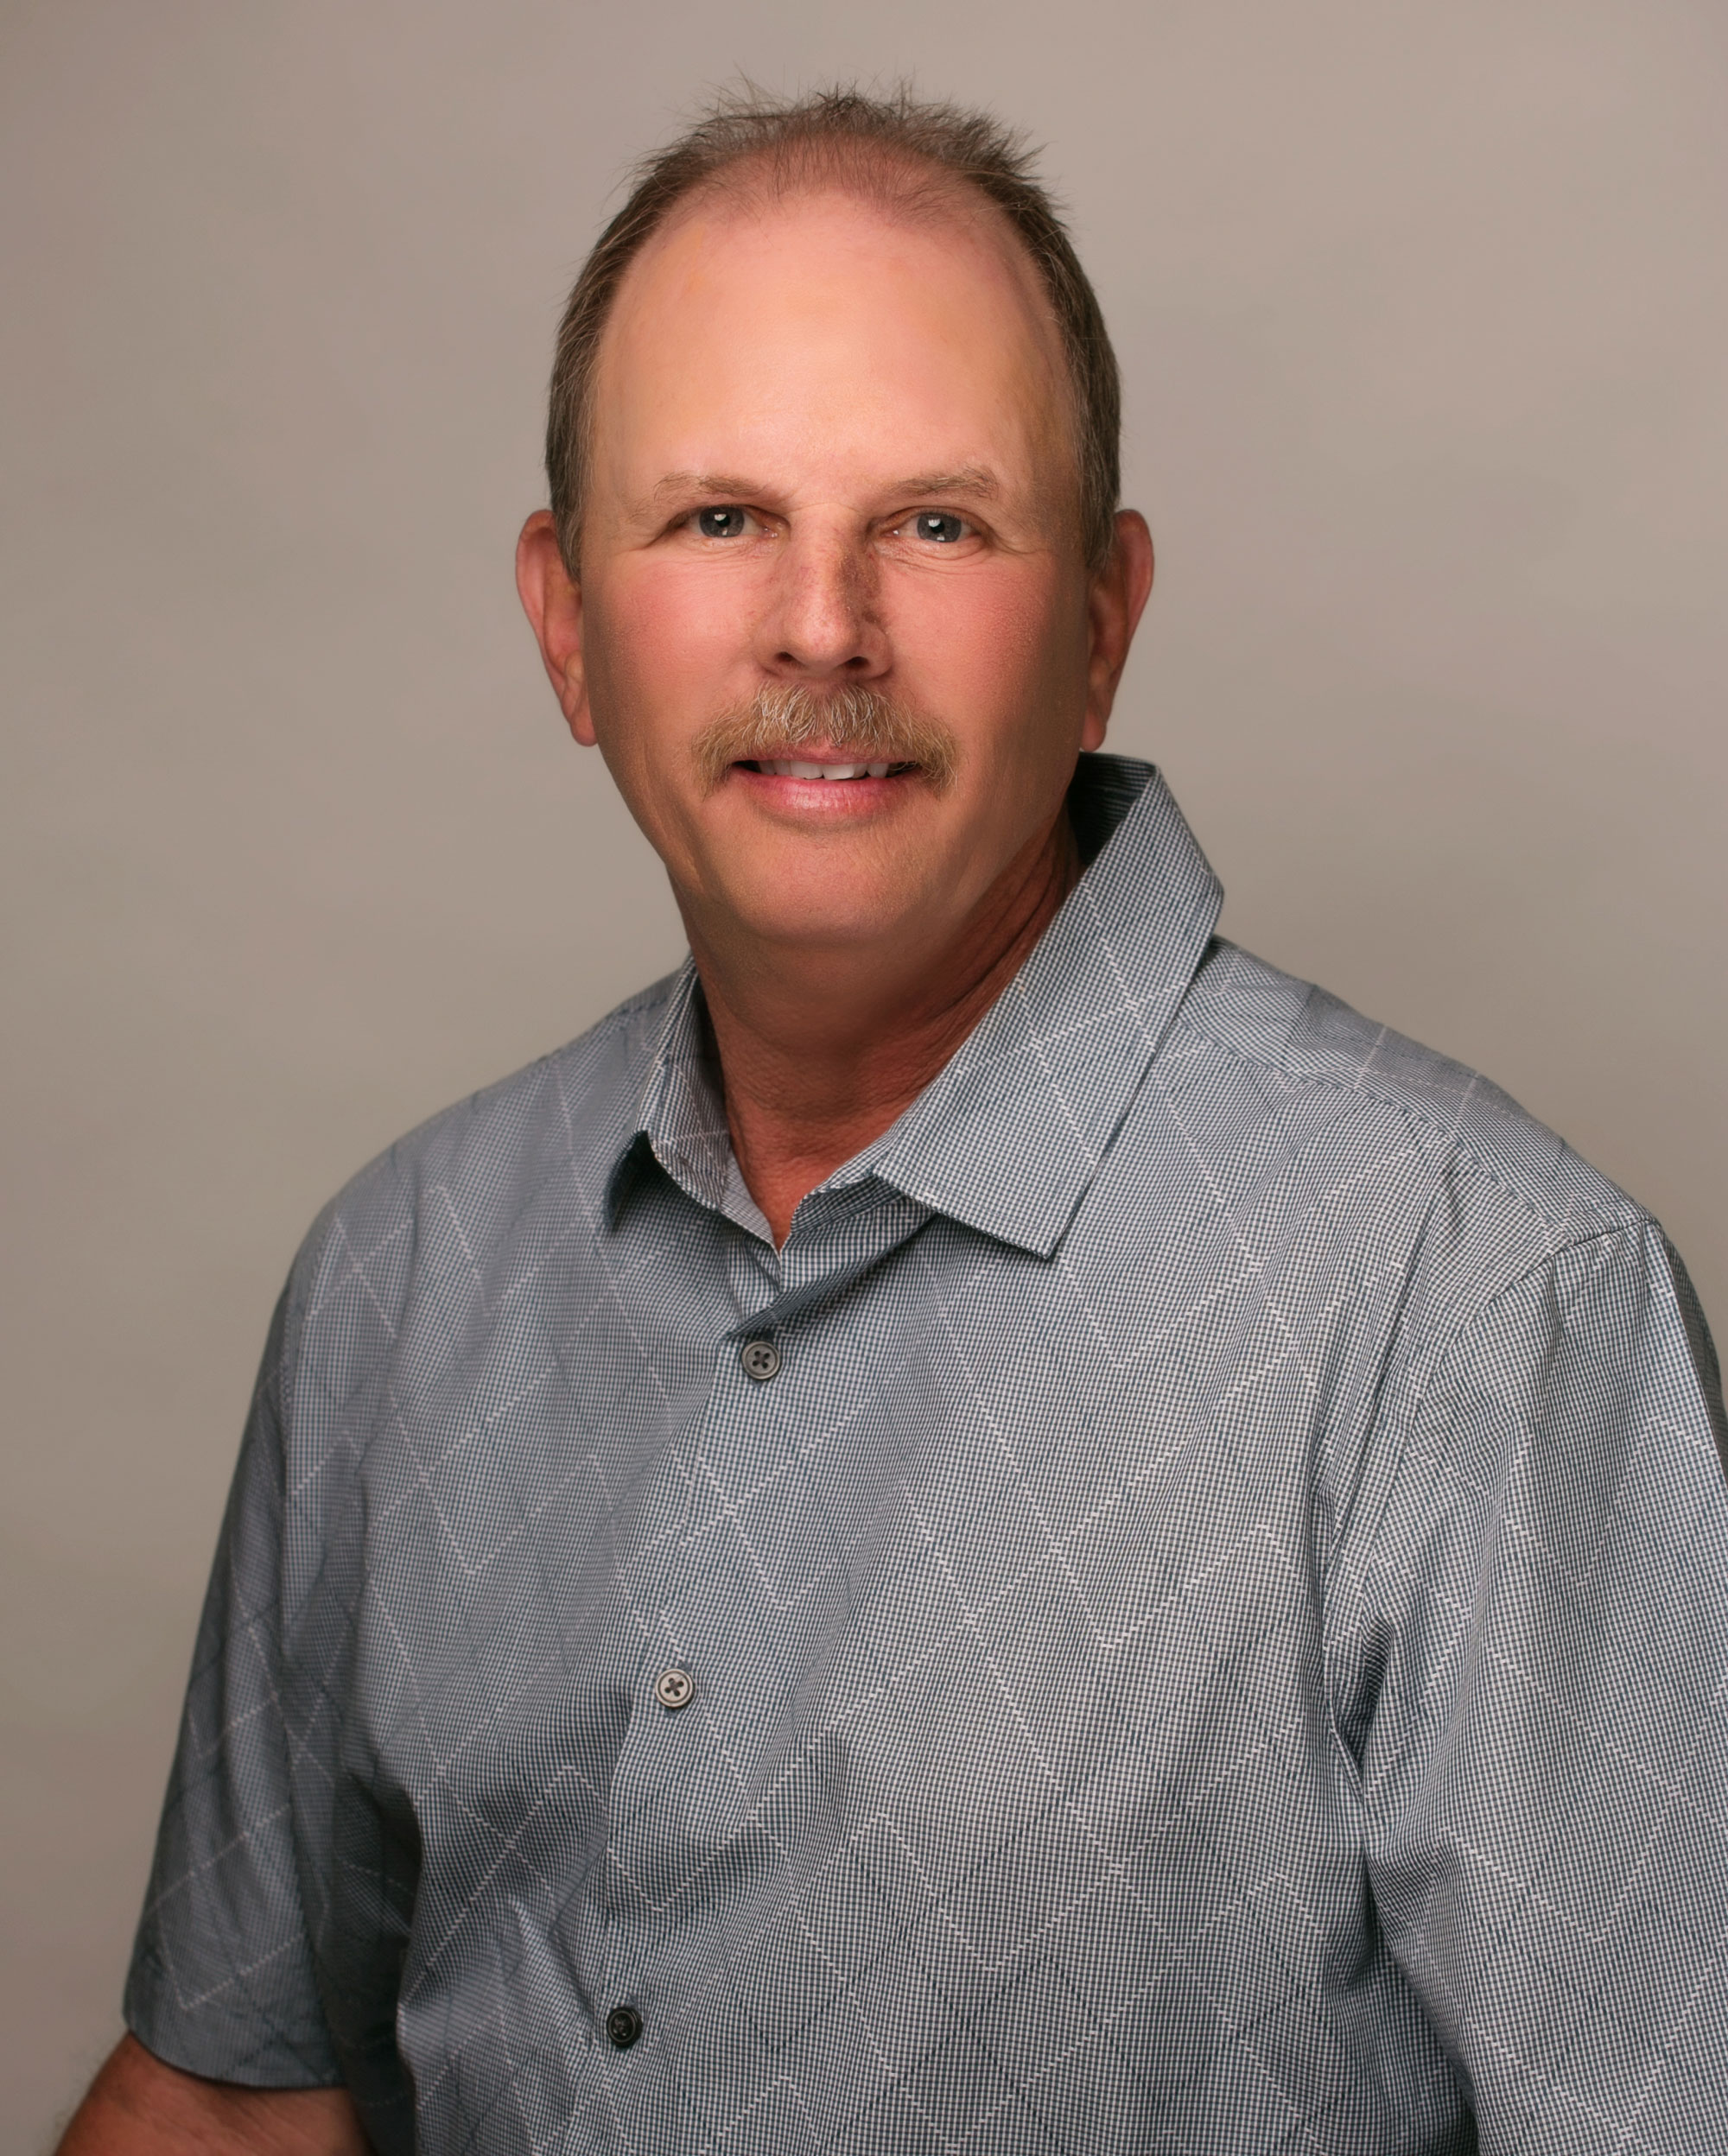 Mike Benson - Director of Site Development